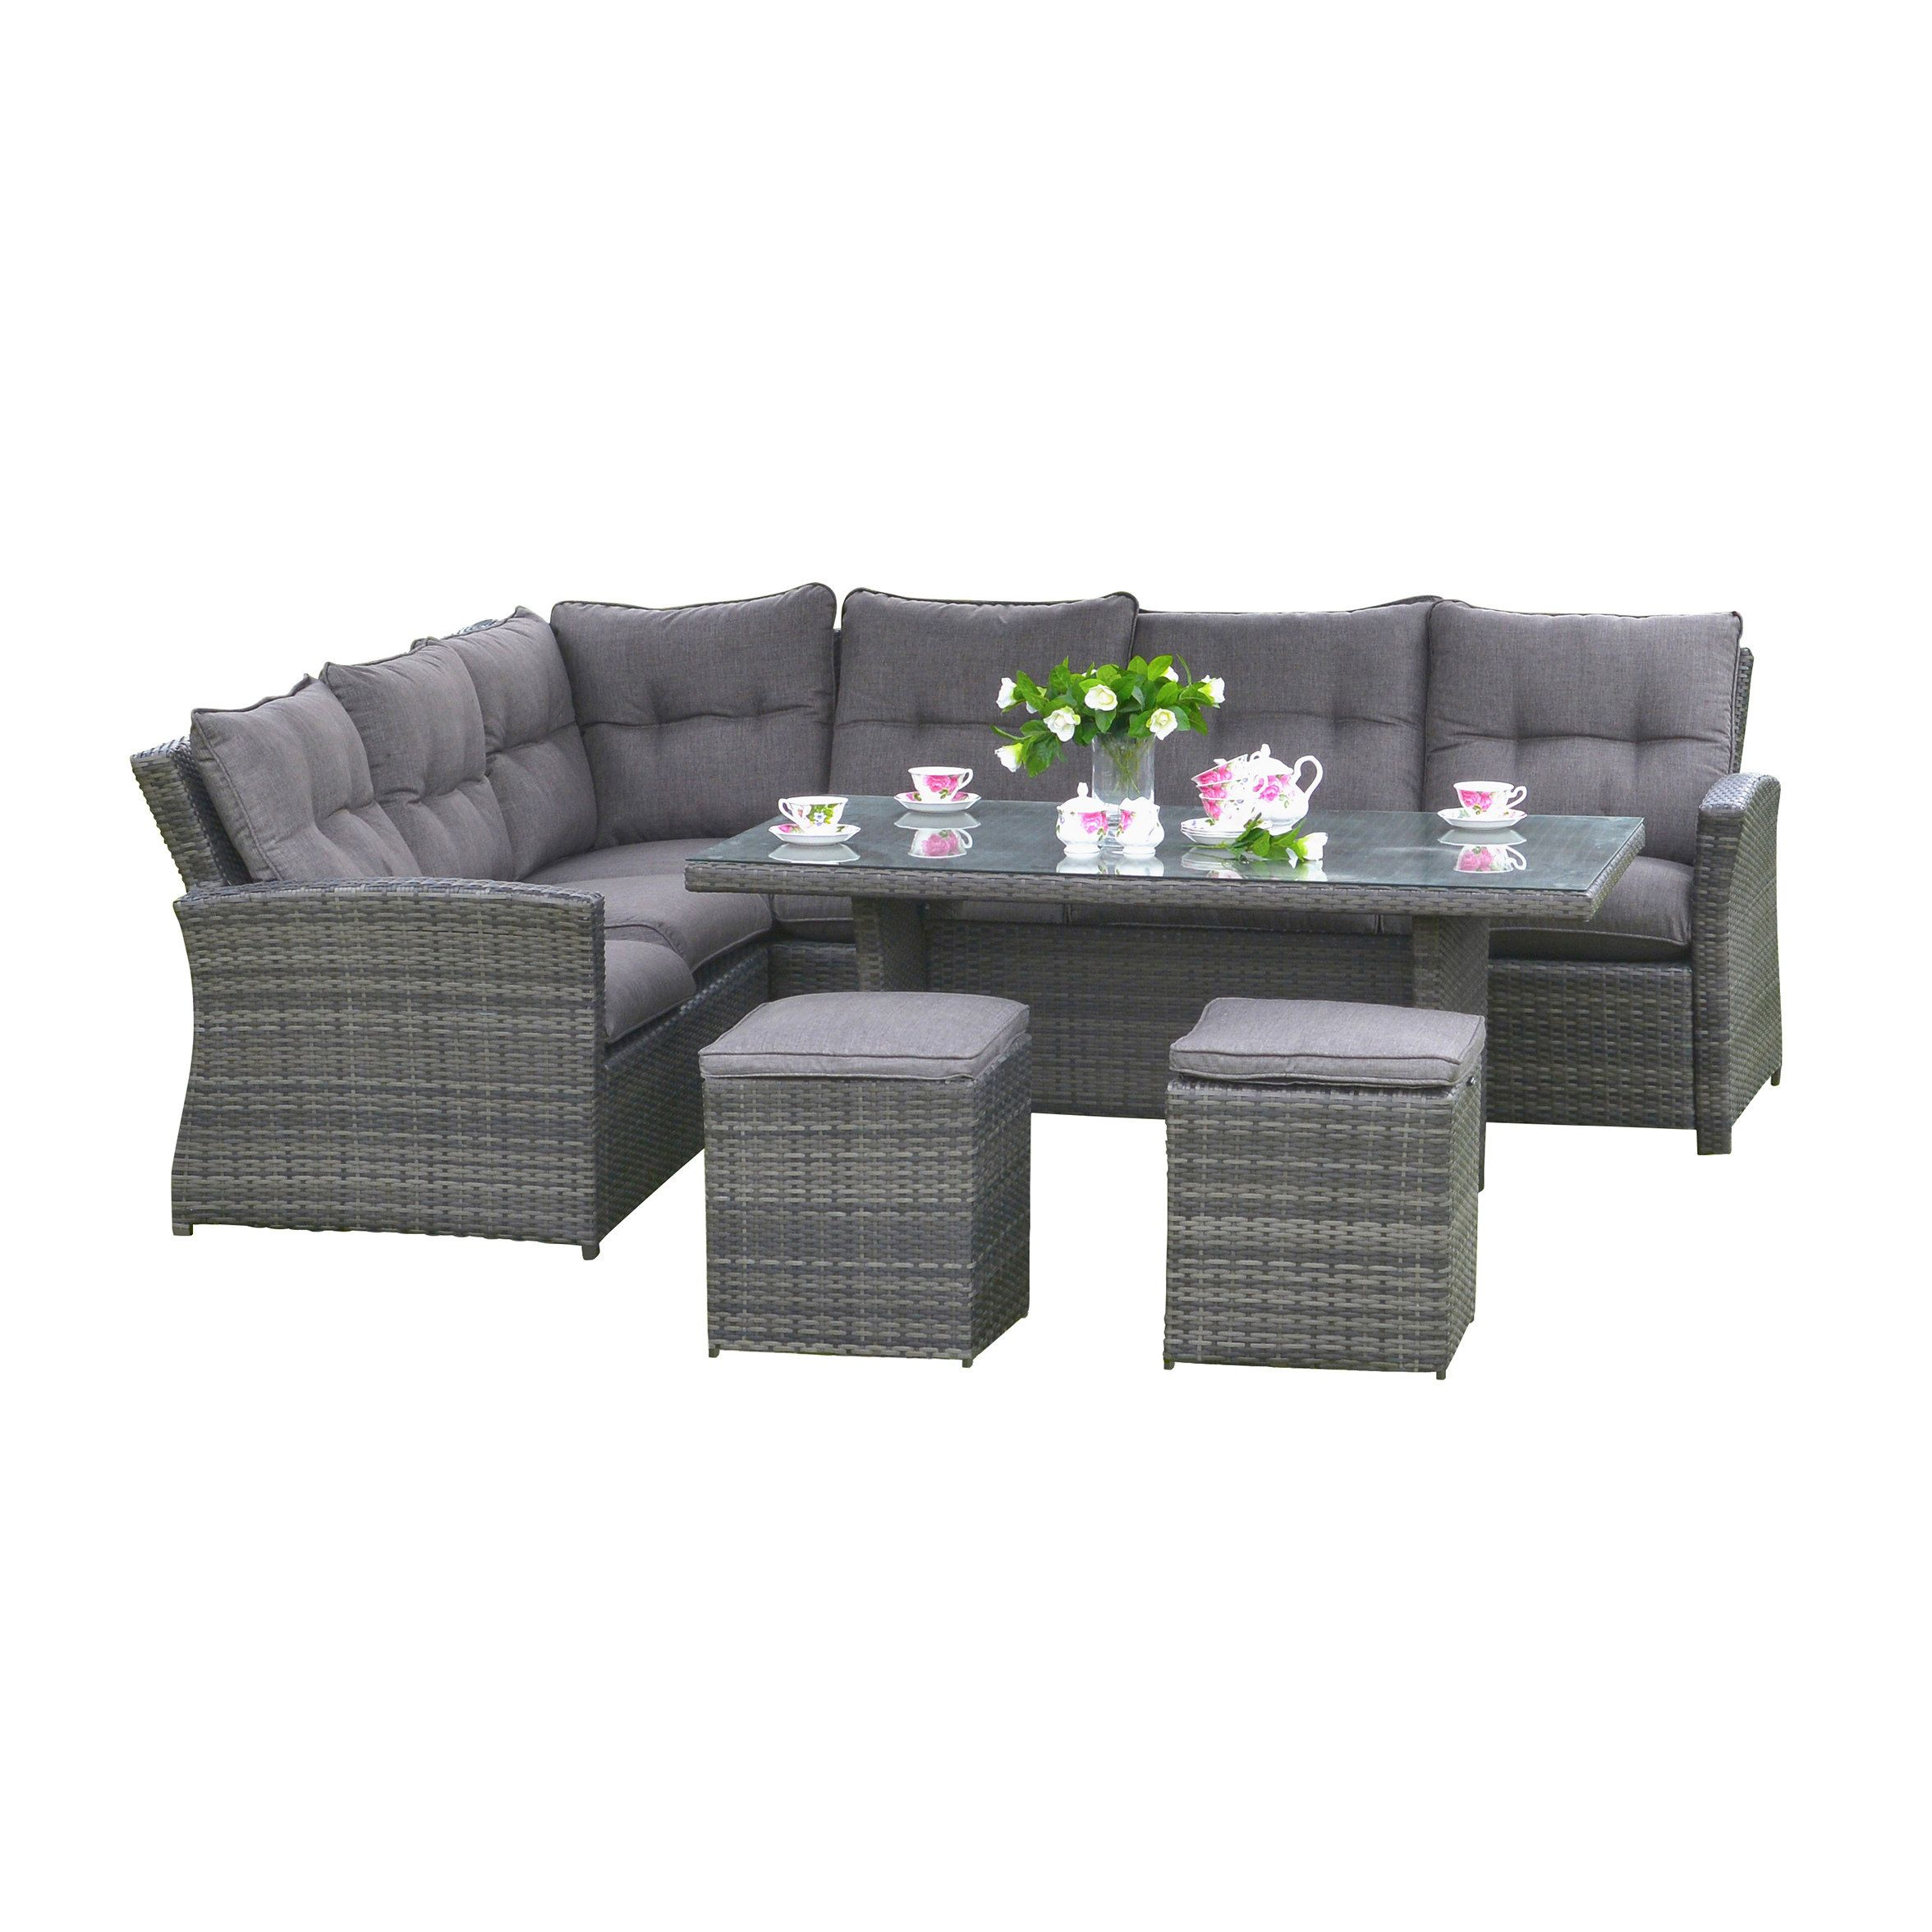 Lima Bedroom Furniture Lima Outdoor Wicker Rattan Dinning Set Grey Size 6 Piece Sets